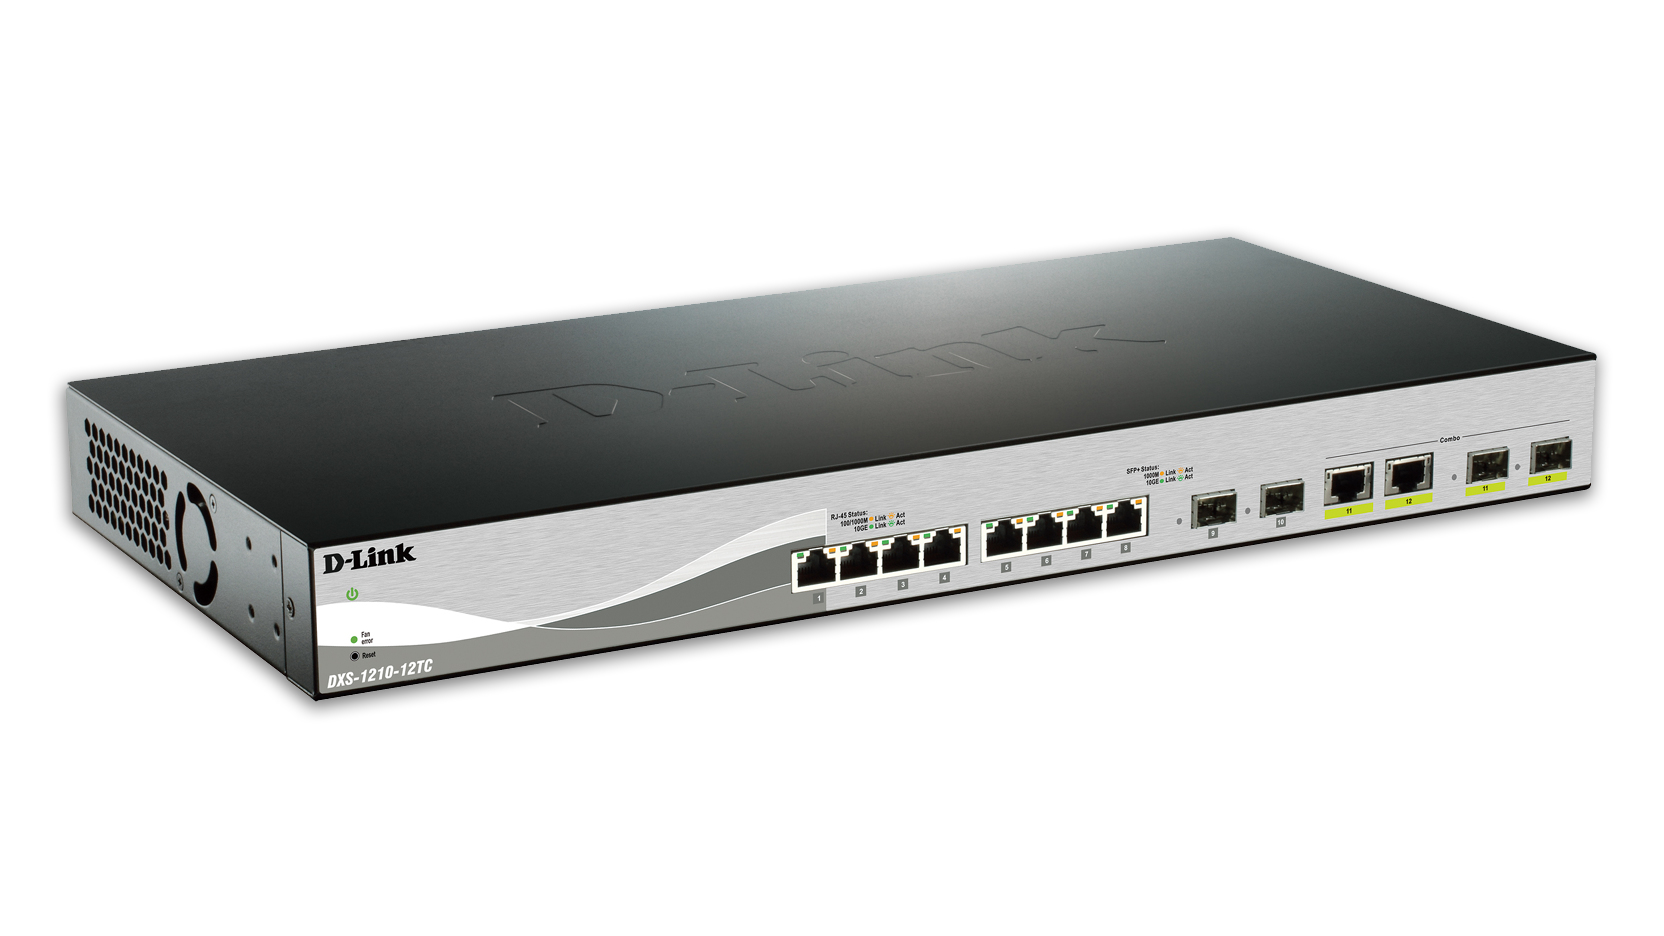 D-LINK DXS-1210-12TC MANAGED NETWORK SWITCH L2 10G ETHERNET (100/1000/10000) 1U BLACK, SILVER